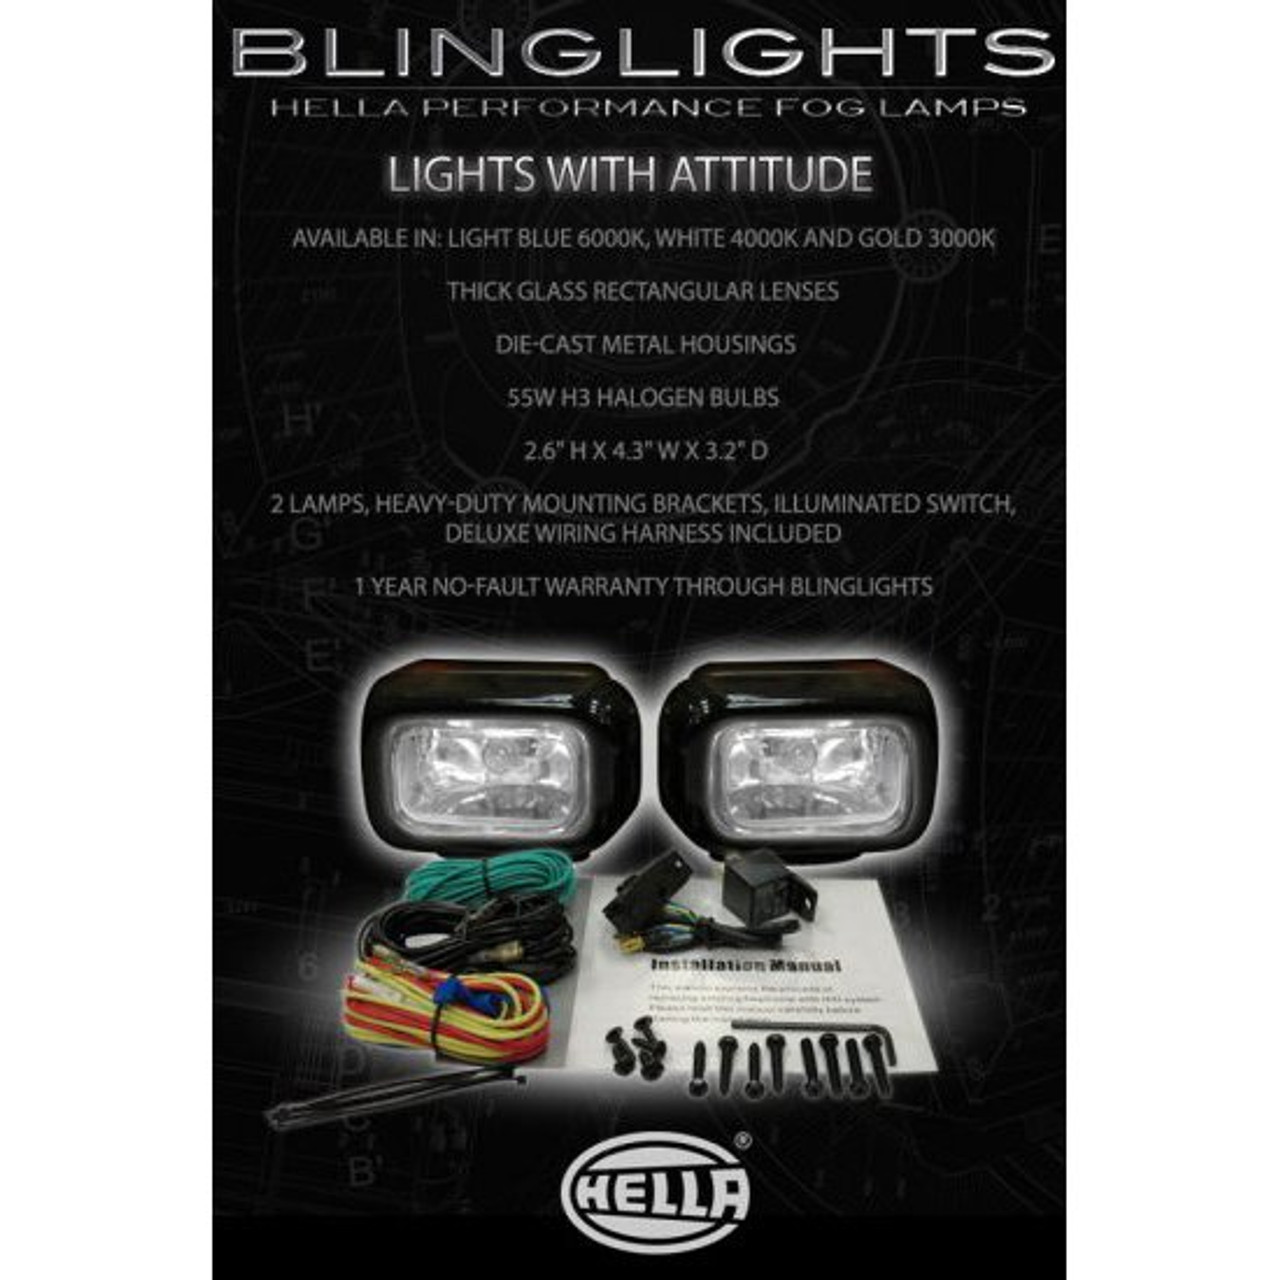 1998 1999 2000 Mercedes-Benz C43 AMG Xenon Fog Lights Driving Lamps Foglamps Kit C 43 w202